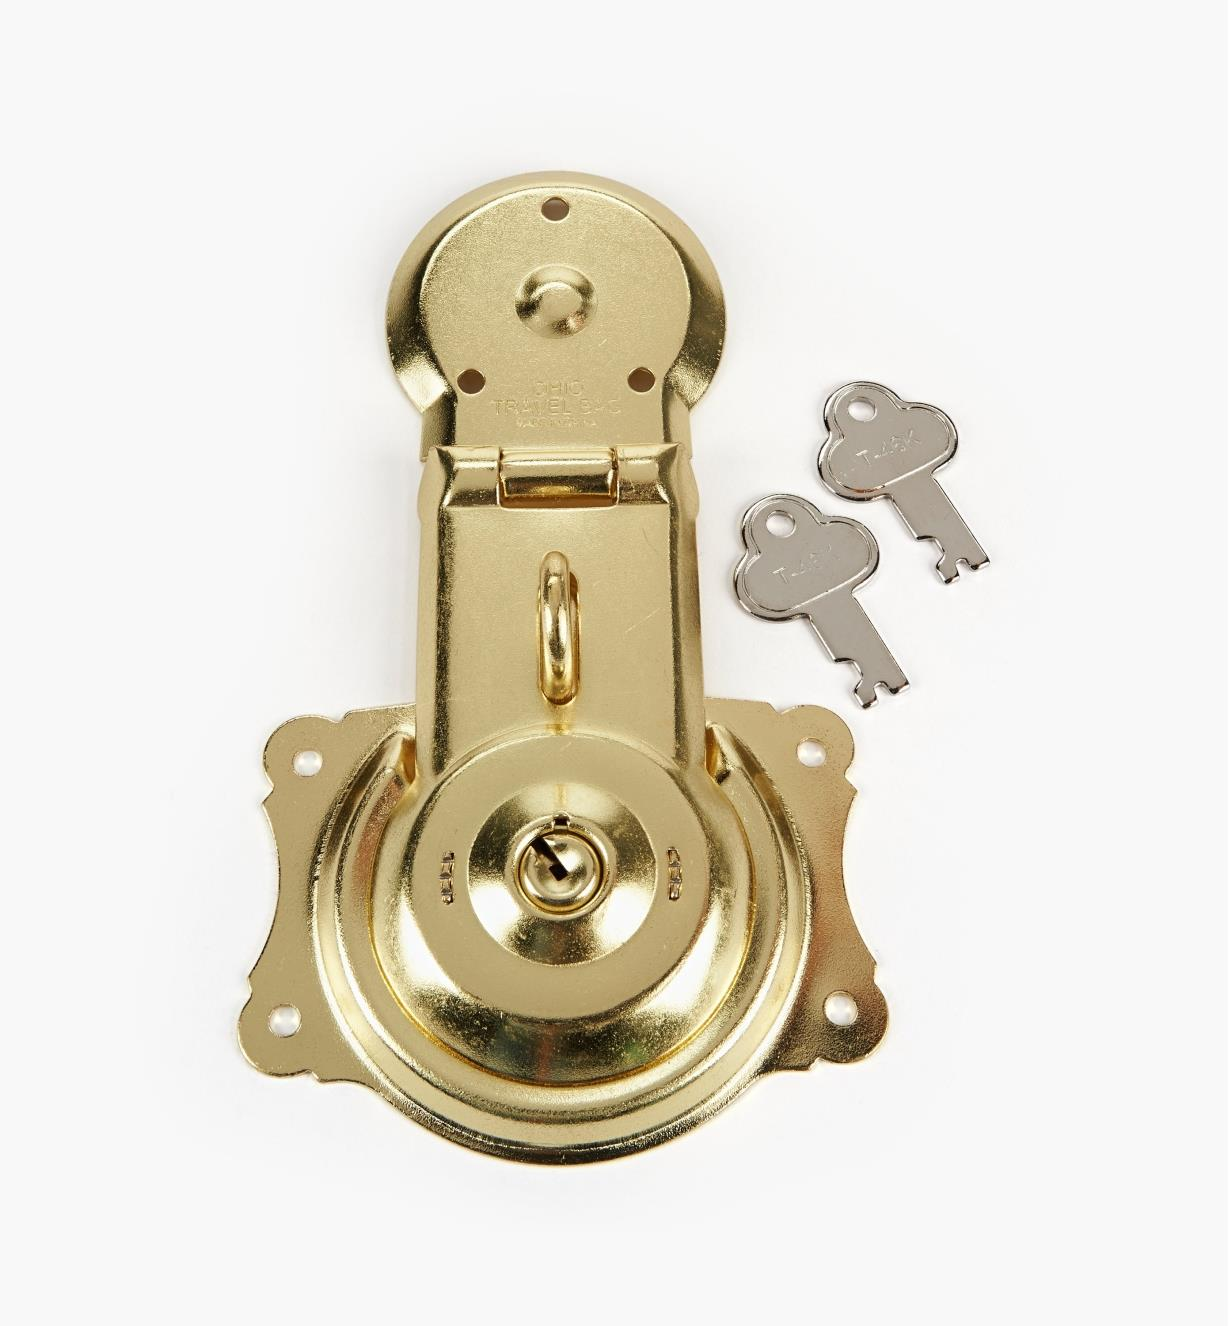 00S6302 - Brass-Plated Trunk Lock, ea.